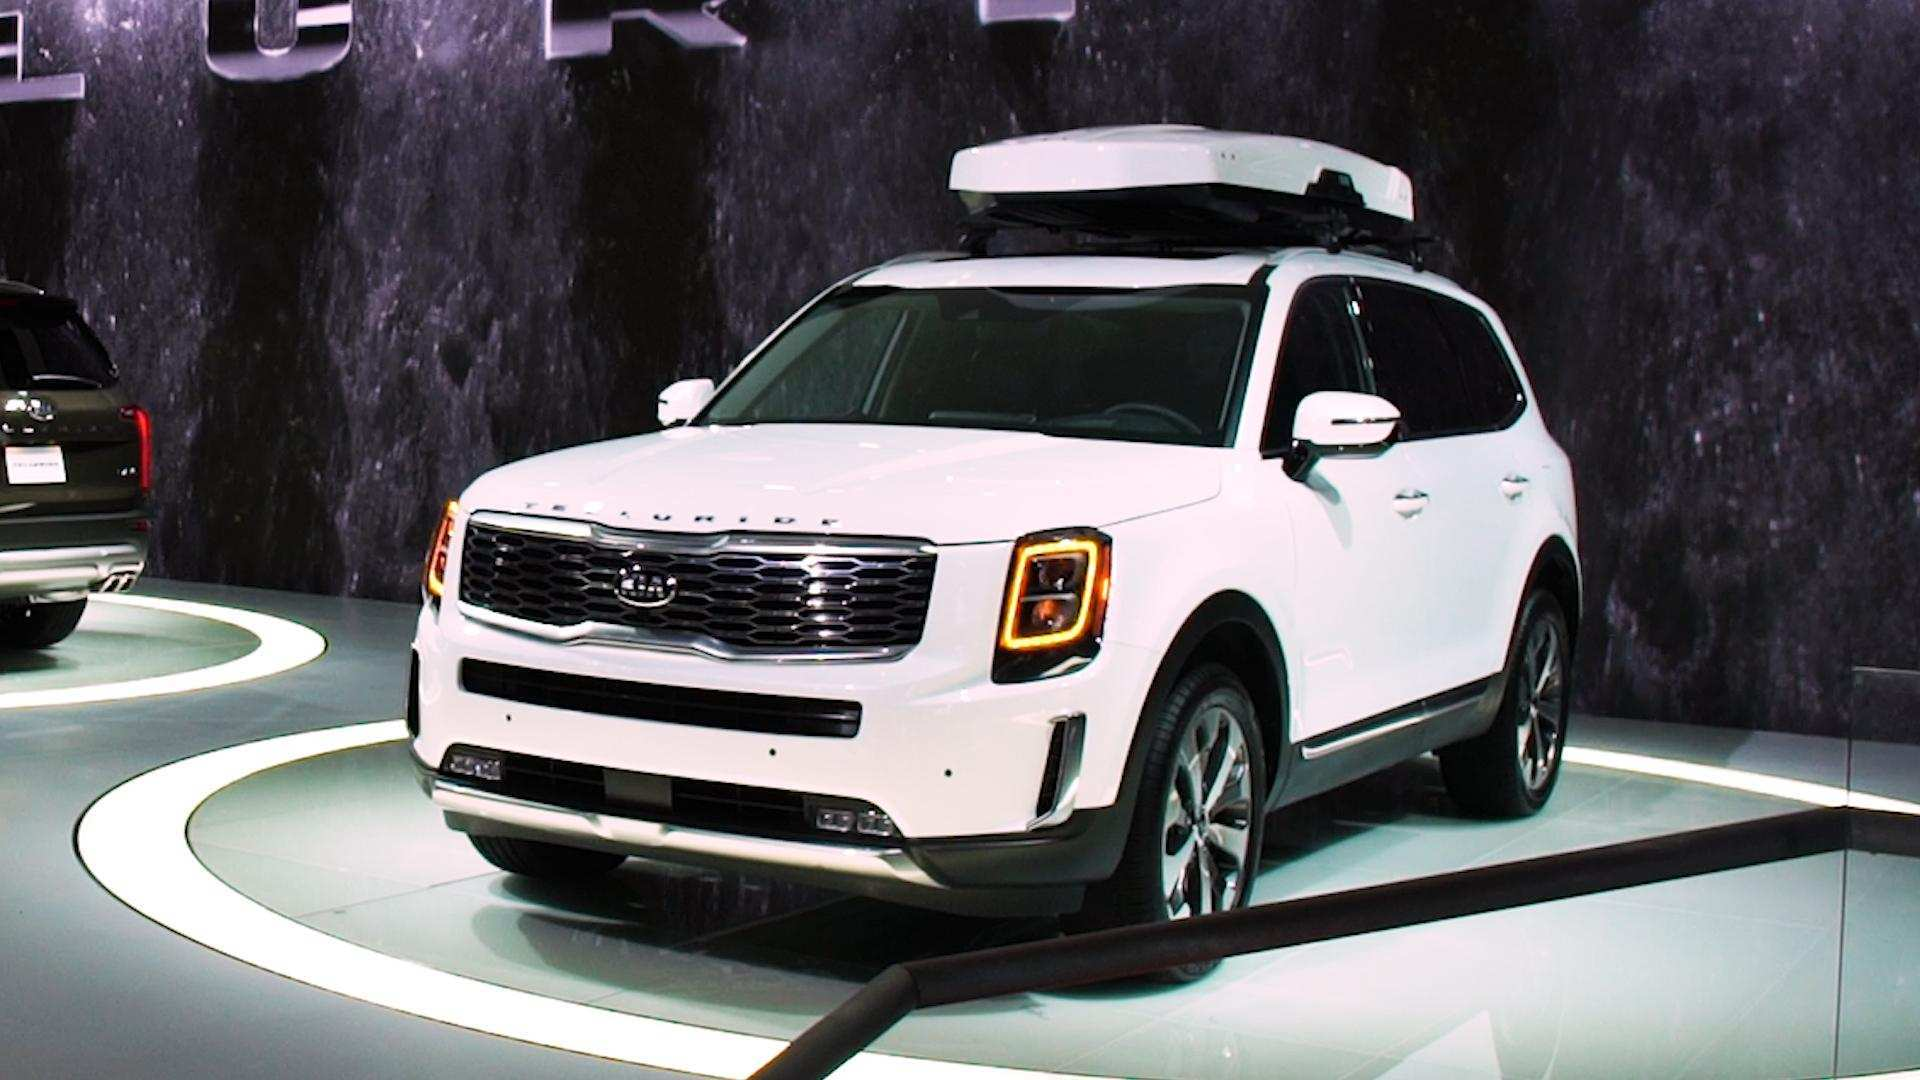 69 Best Review 2020 Kia Telluride Video New Review by 2020 Kia Telluride Video